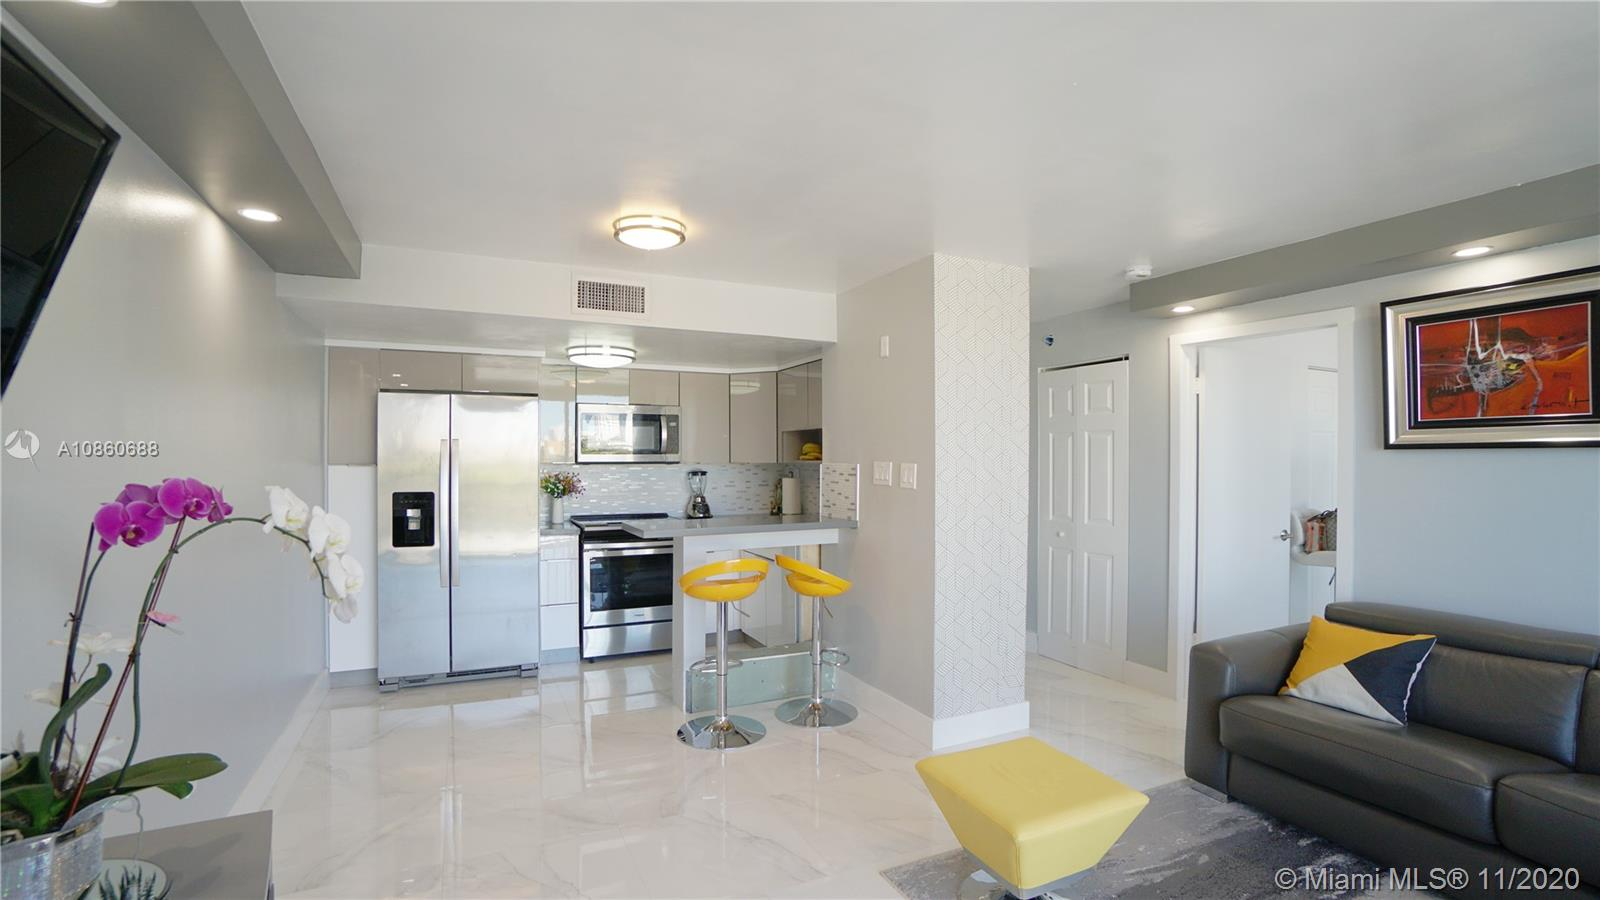 1740 NW N River Dr # 612, Miami, Florida 33125, 1 Bedroom Bedrooms, ,1 BathroomBathrooms,Residential,For Sale,1740 NW N River Dr # 612,A10860688